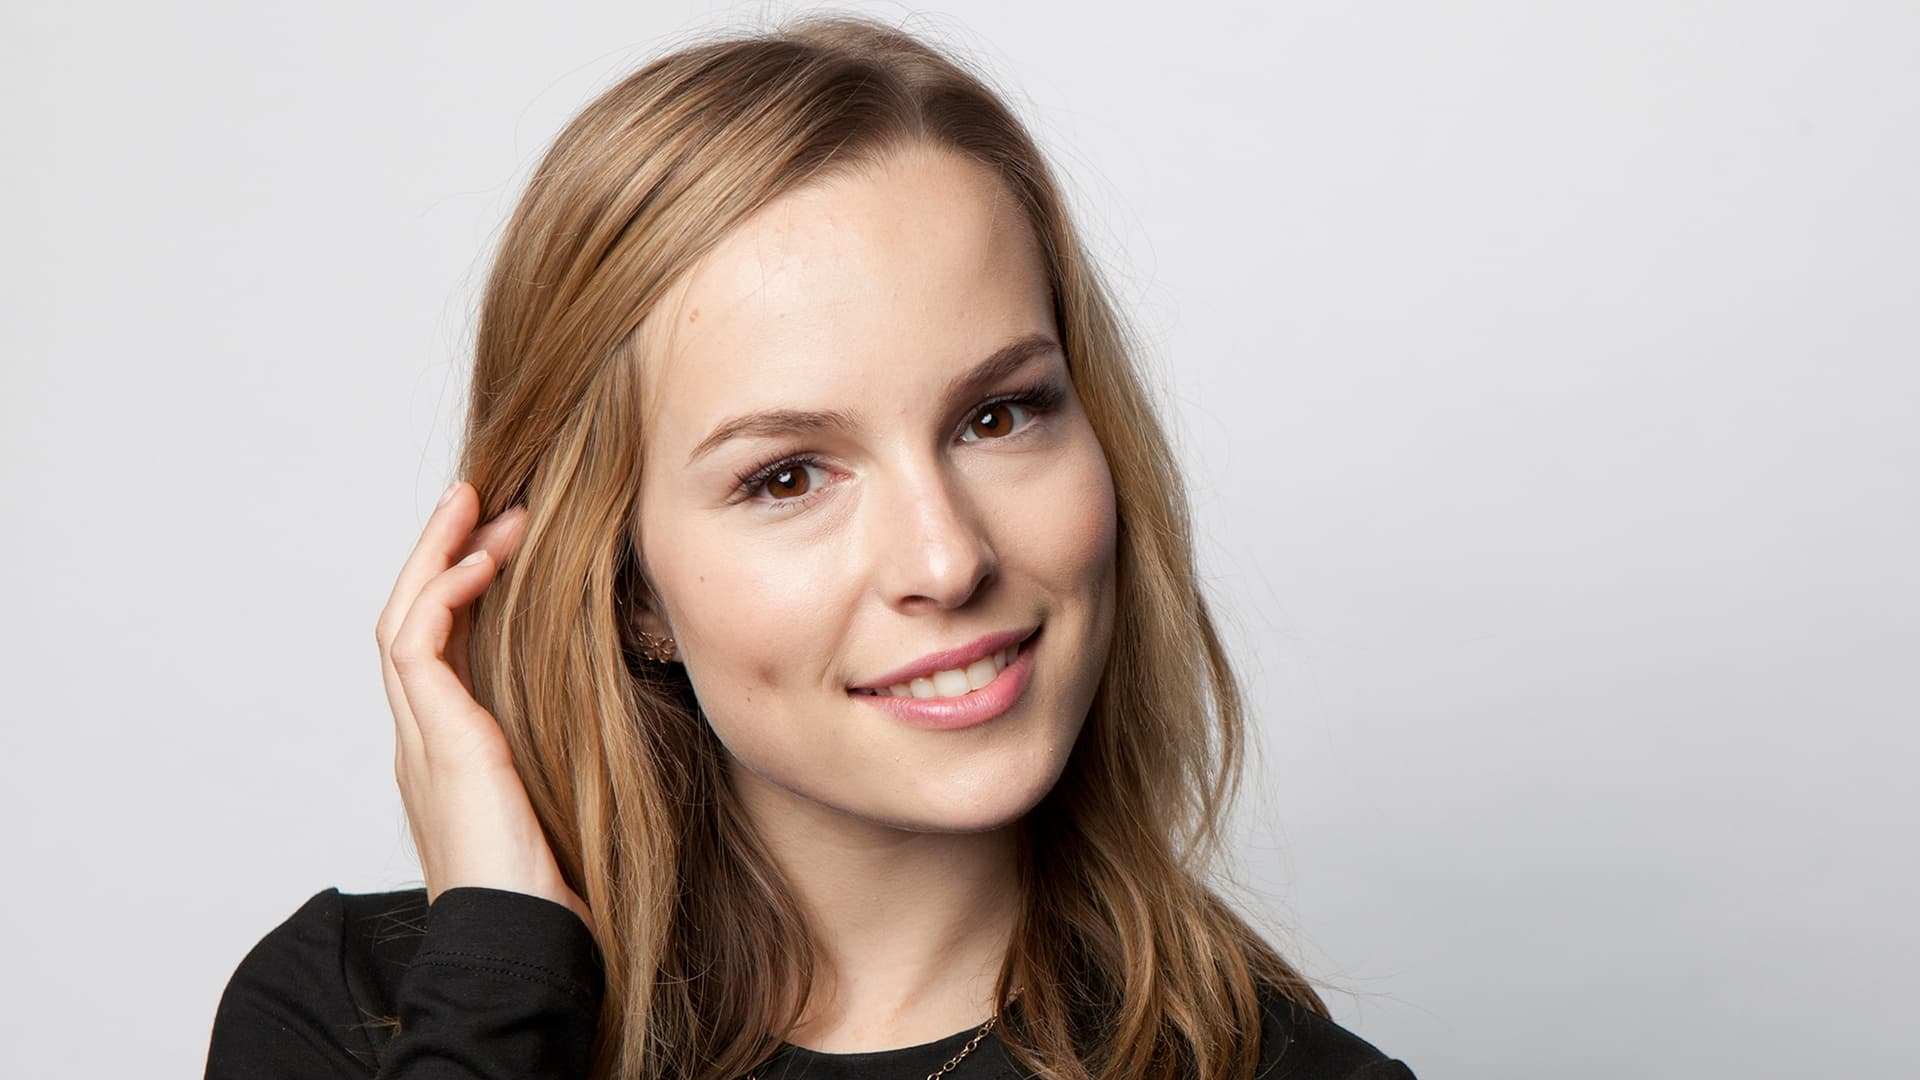 Who is bridgit mendler dating now 10